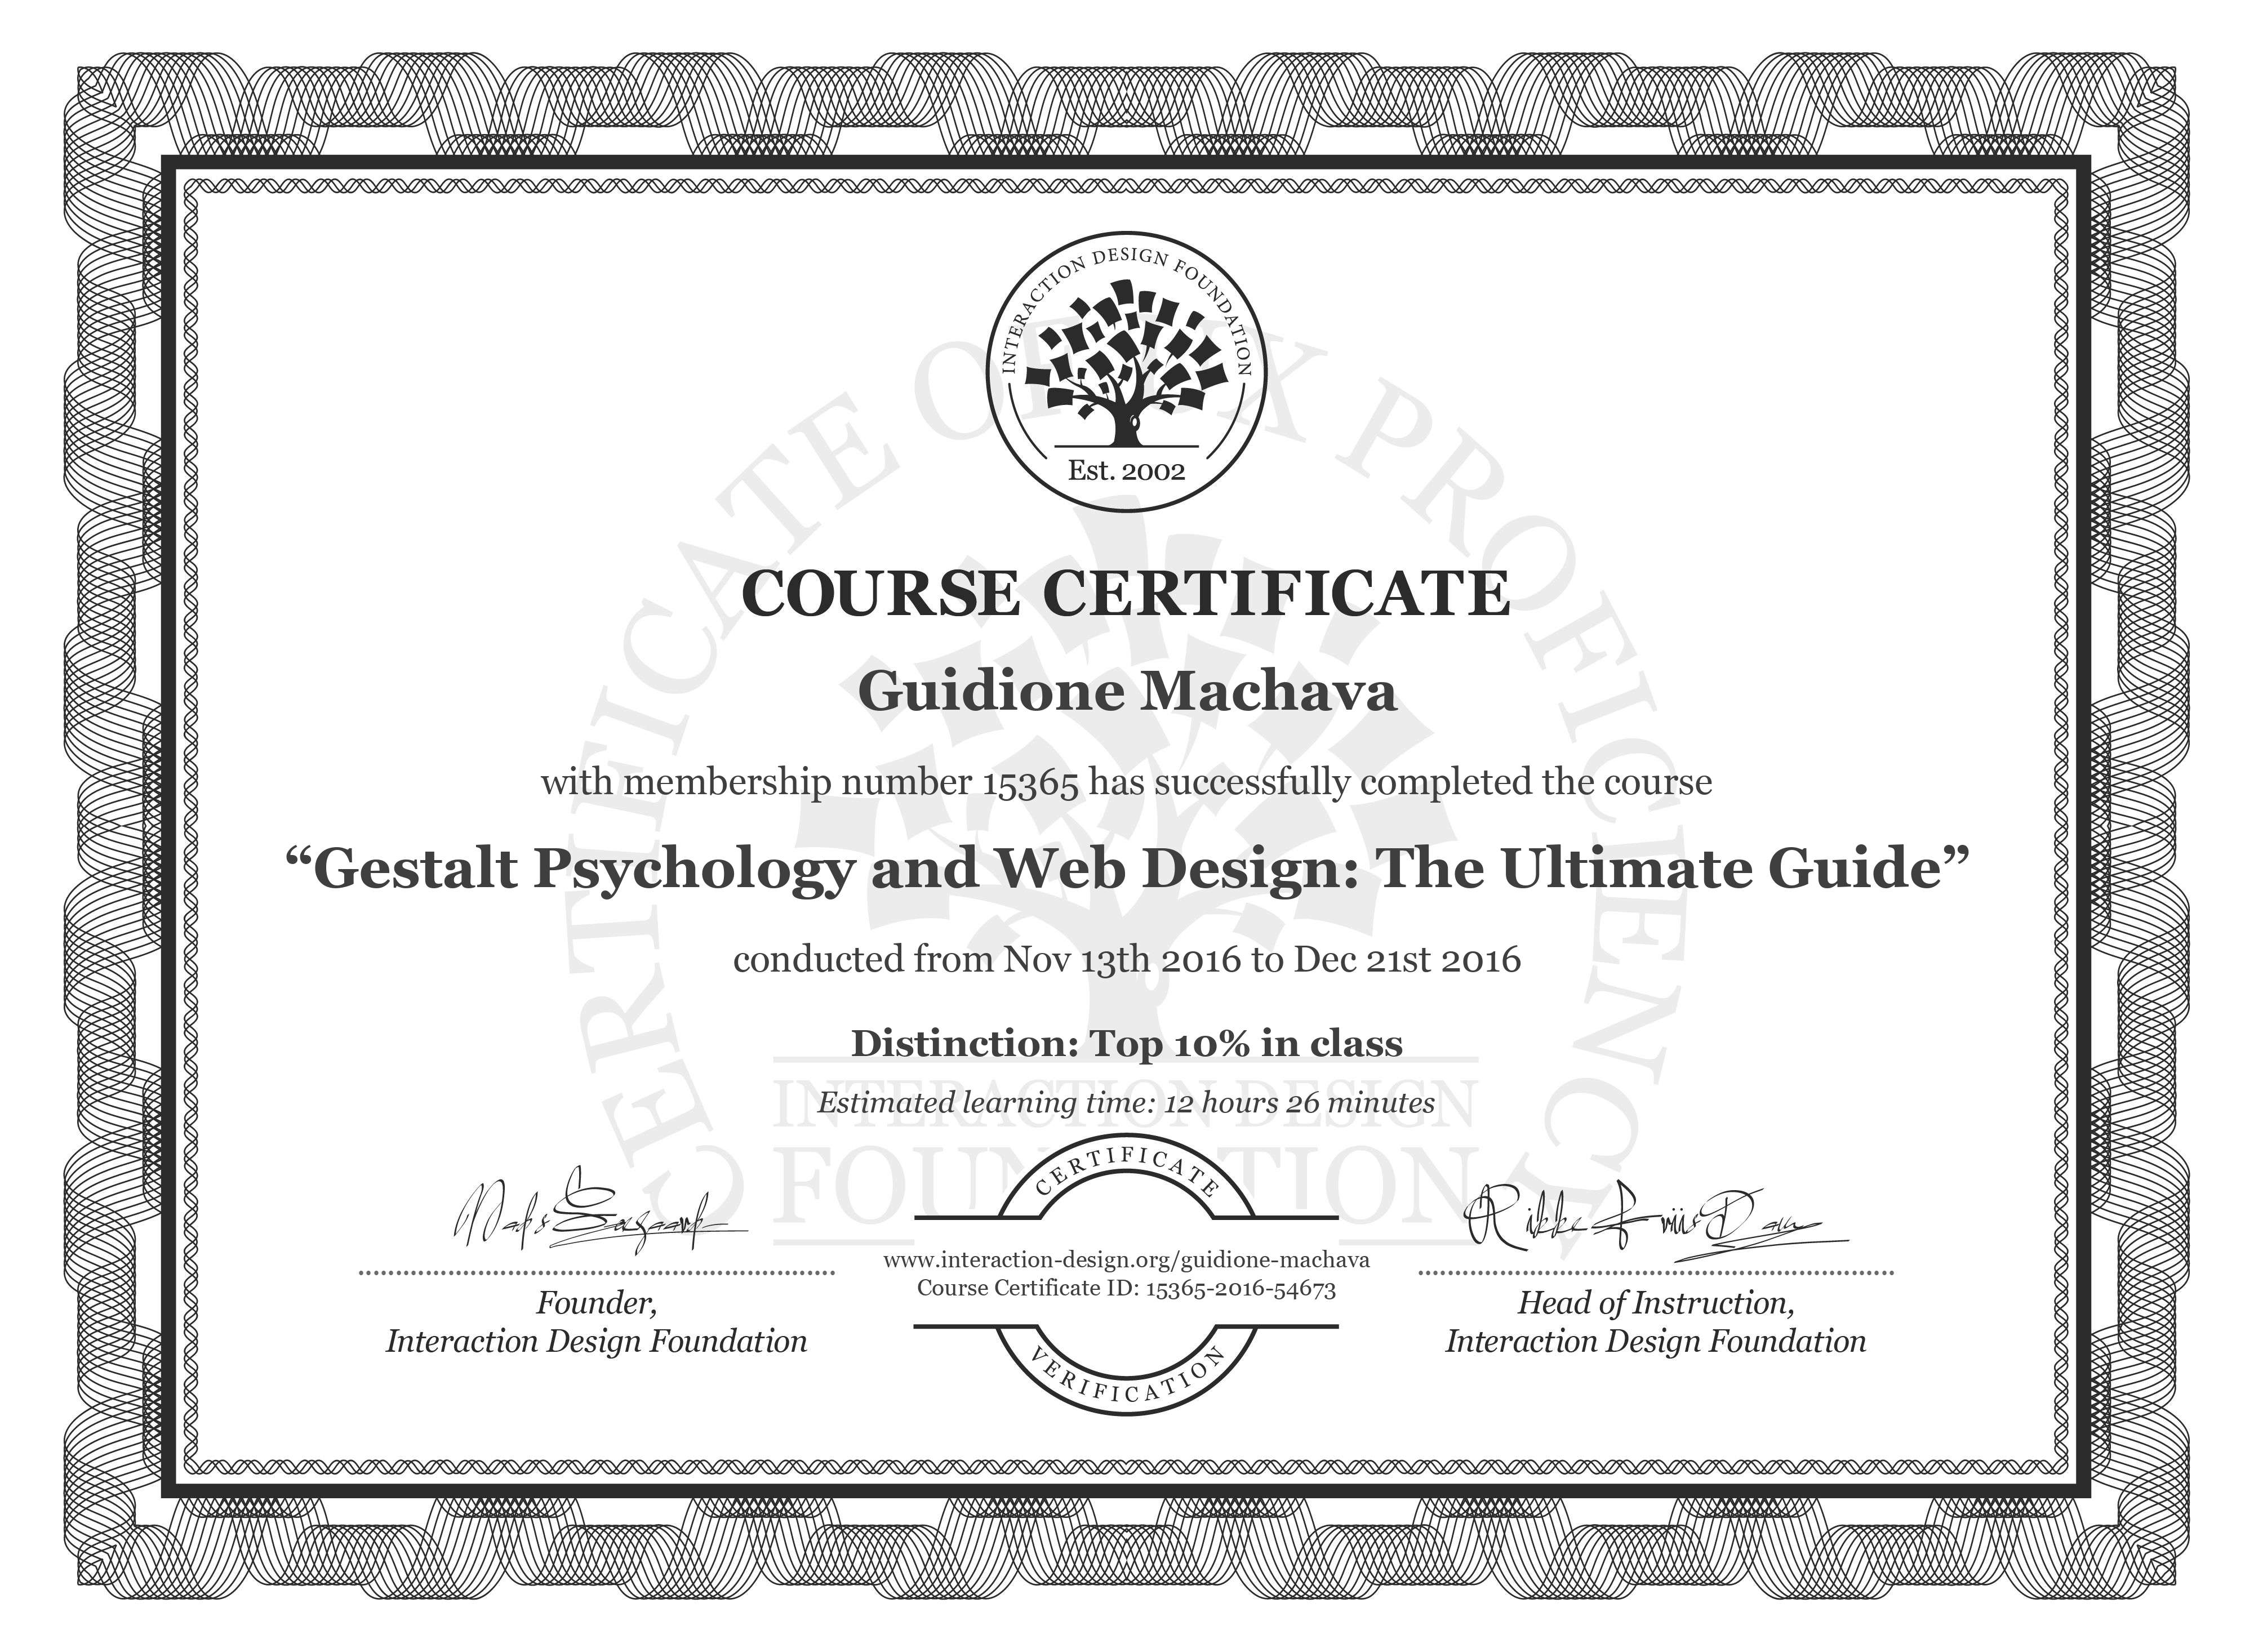 Guidione Machava: Course Certificate - Gestalt Psychology and Web Design: The Ultimate Guide